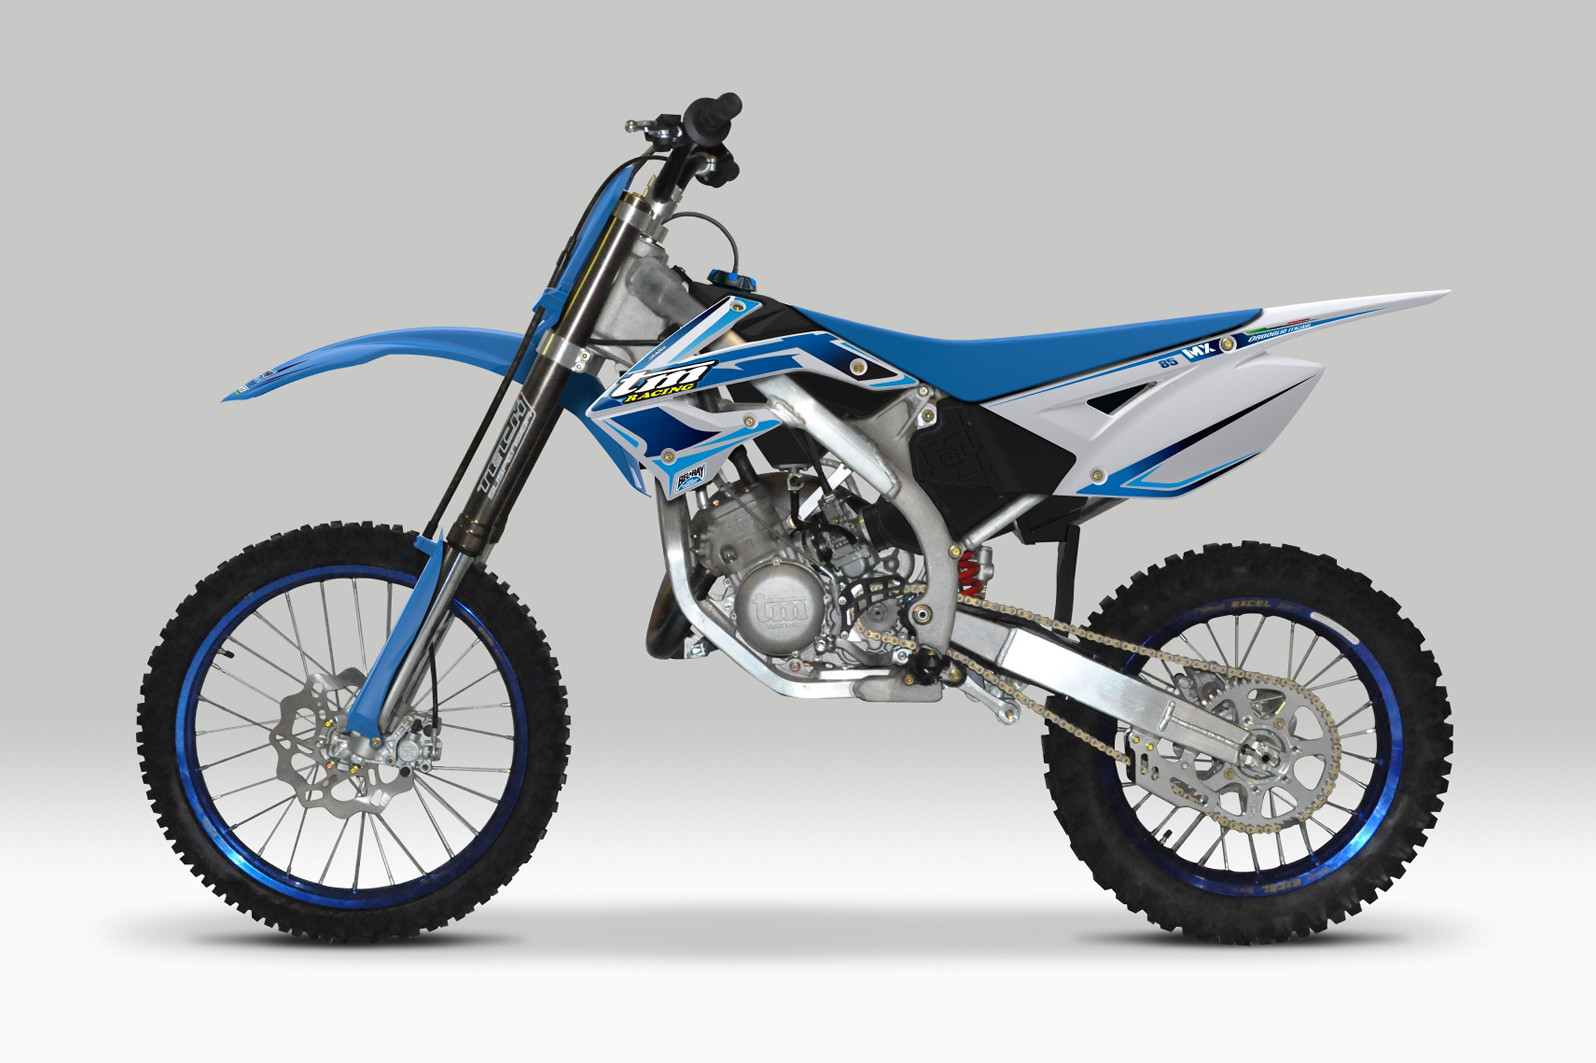 Tm Dirt Bikes >> 2013 Tm Racing Mx 100 Junior Reviews Comparisons Specs